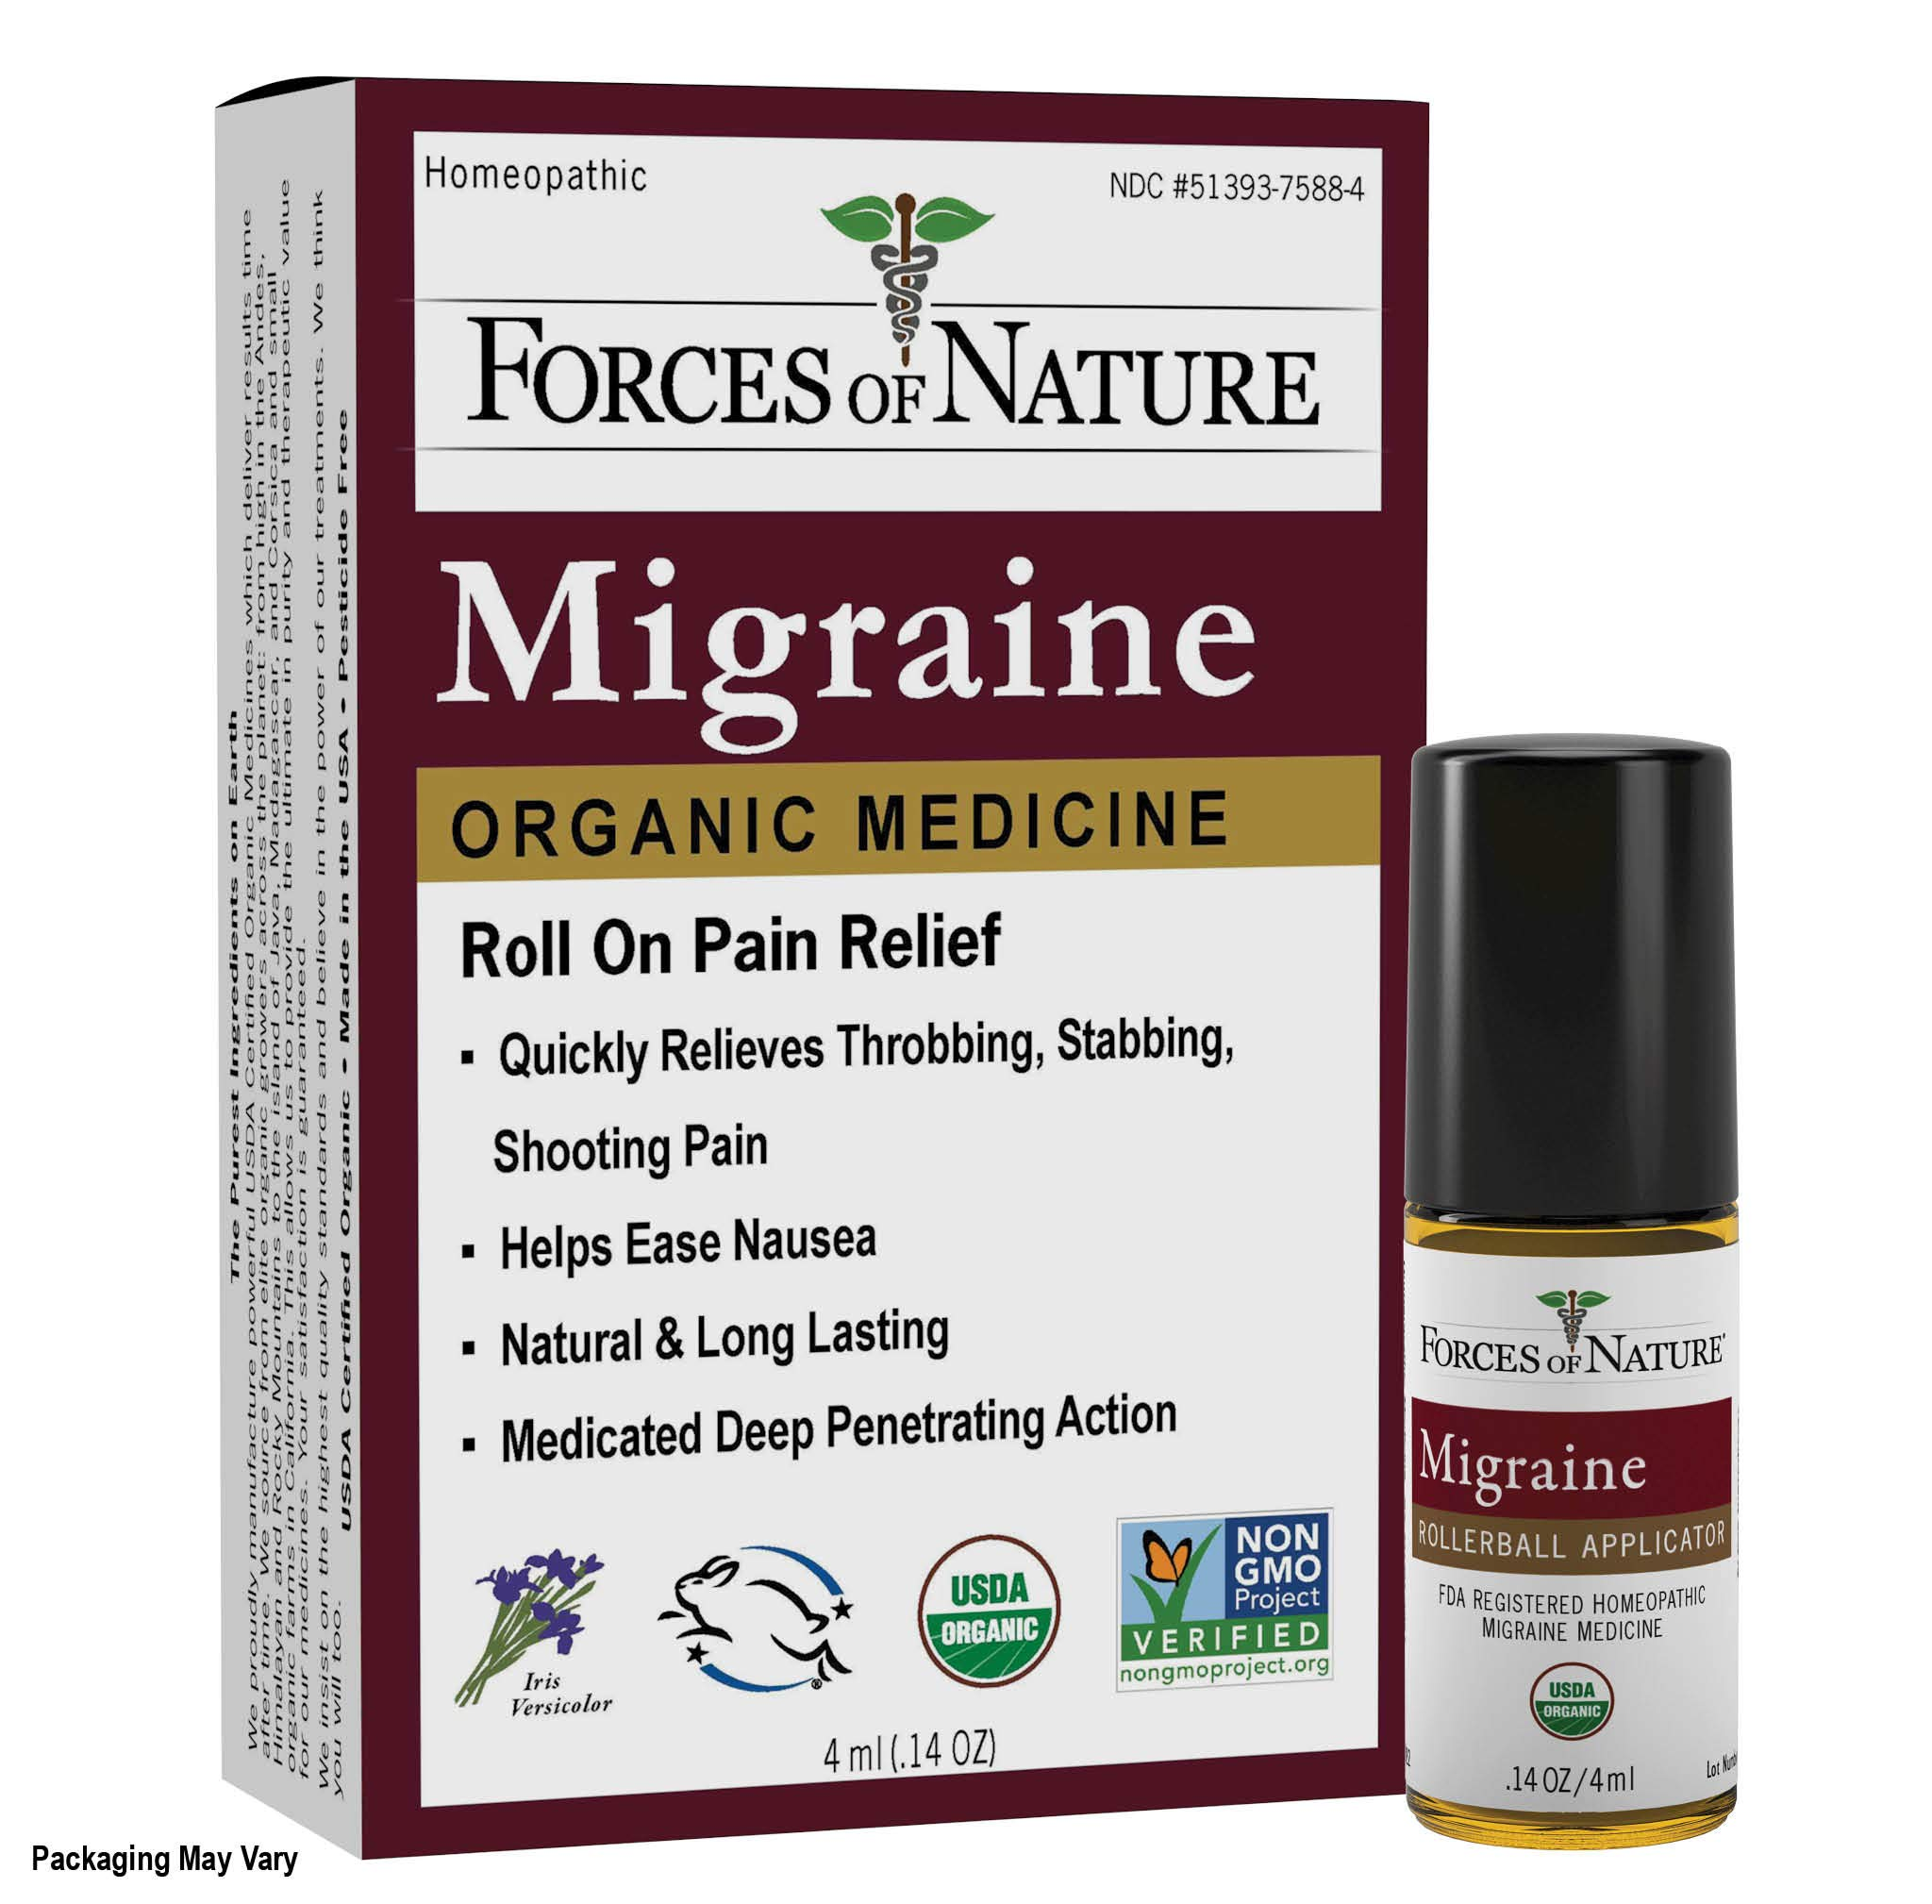 Forces of Nature -Natural, Organic Migraine Pain Relief (4ml) Non GMO, No Harmful Chemicals -Alleviate Prodrome, Aura, Headache, Fatigue, Light and Sound Sensitivity, Nausea Associated with Migraines